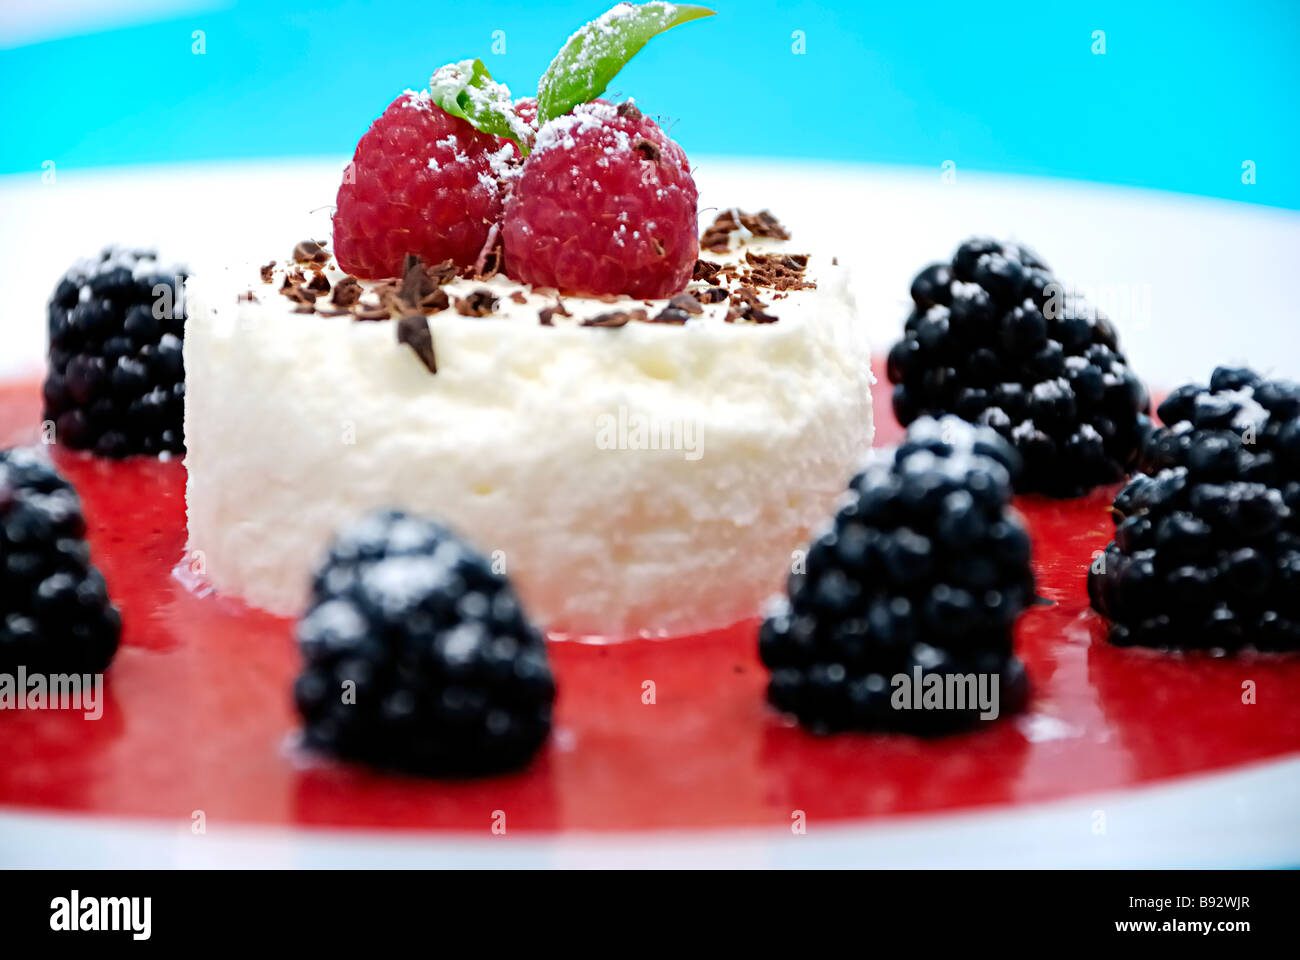 Cheesecake with berries fruits - Stock Image